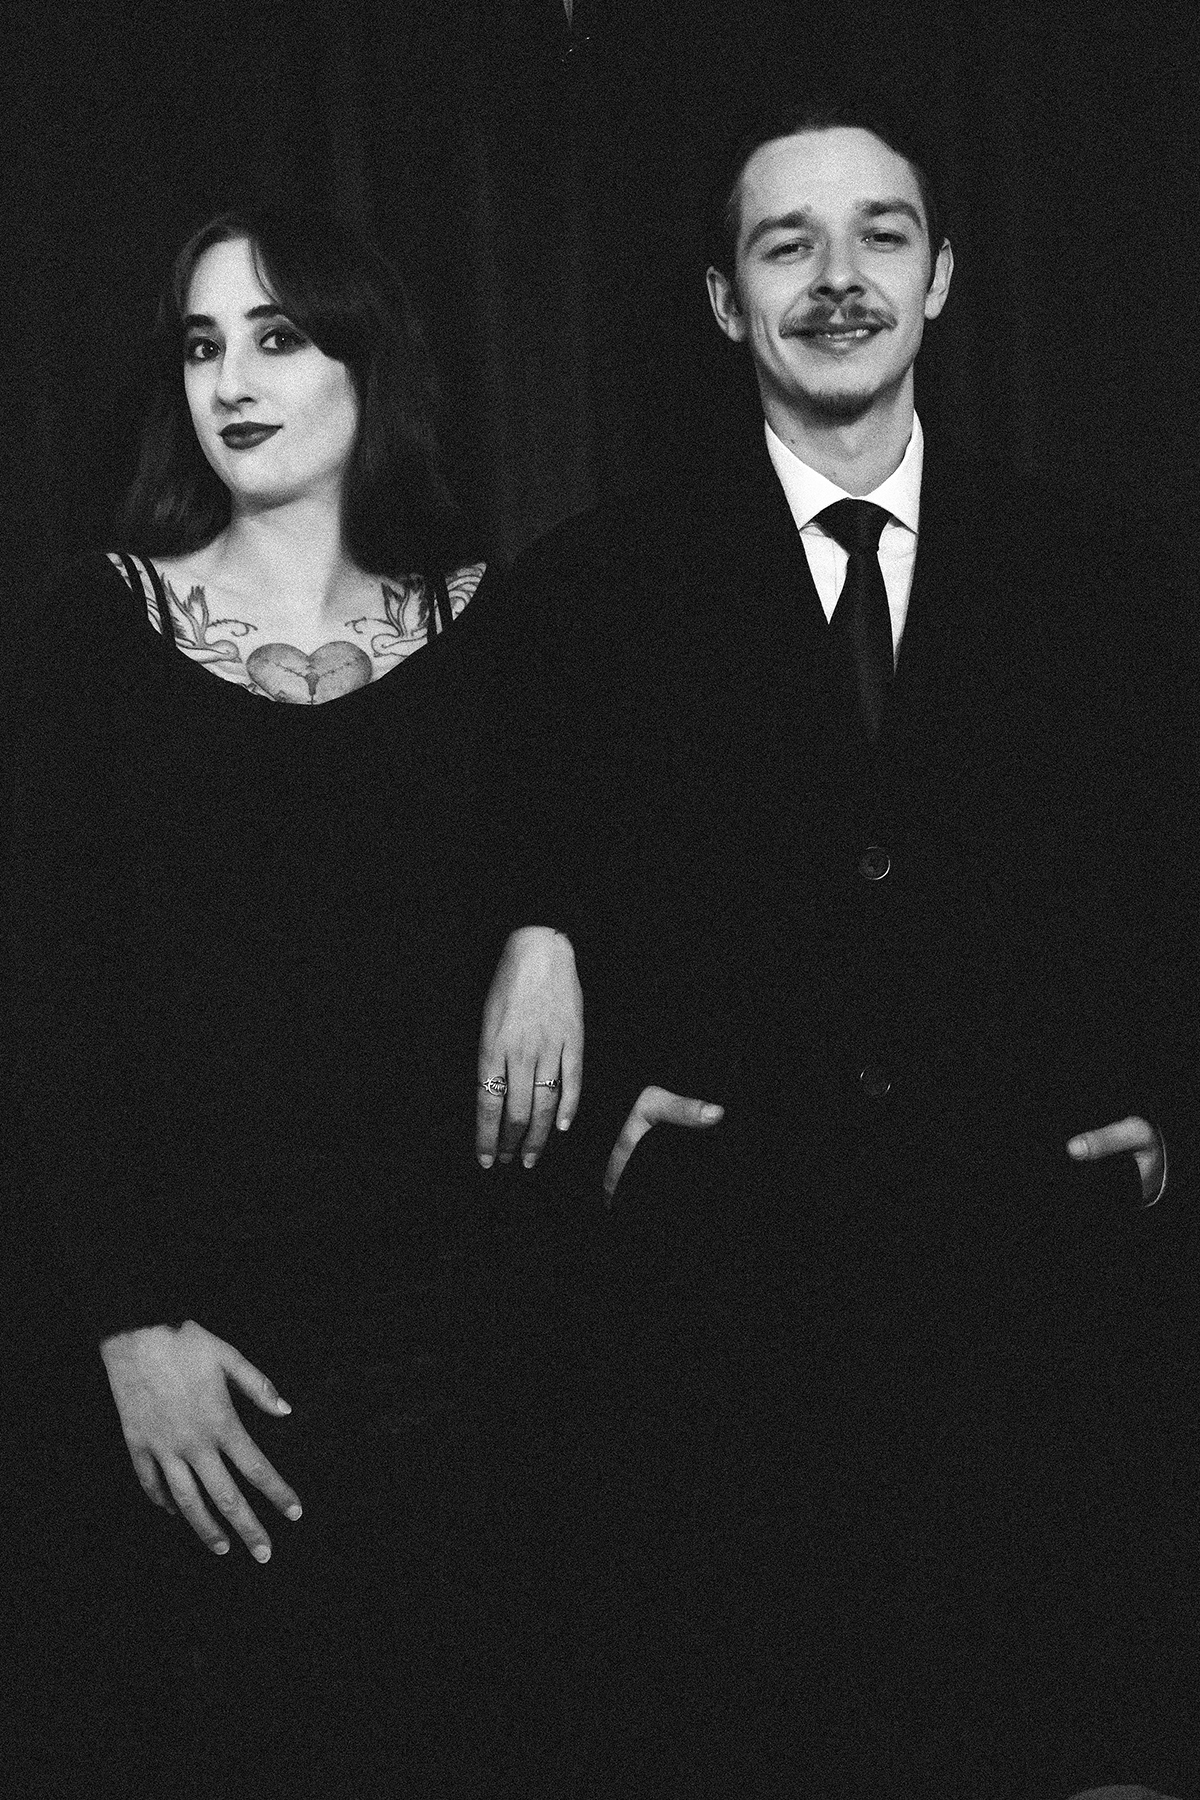 Addams Family Styled Couples Photoshoot